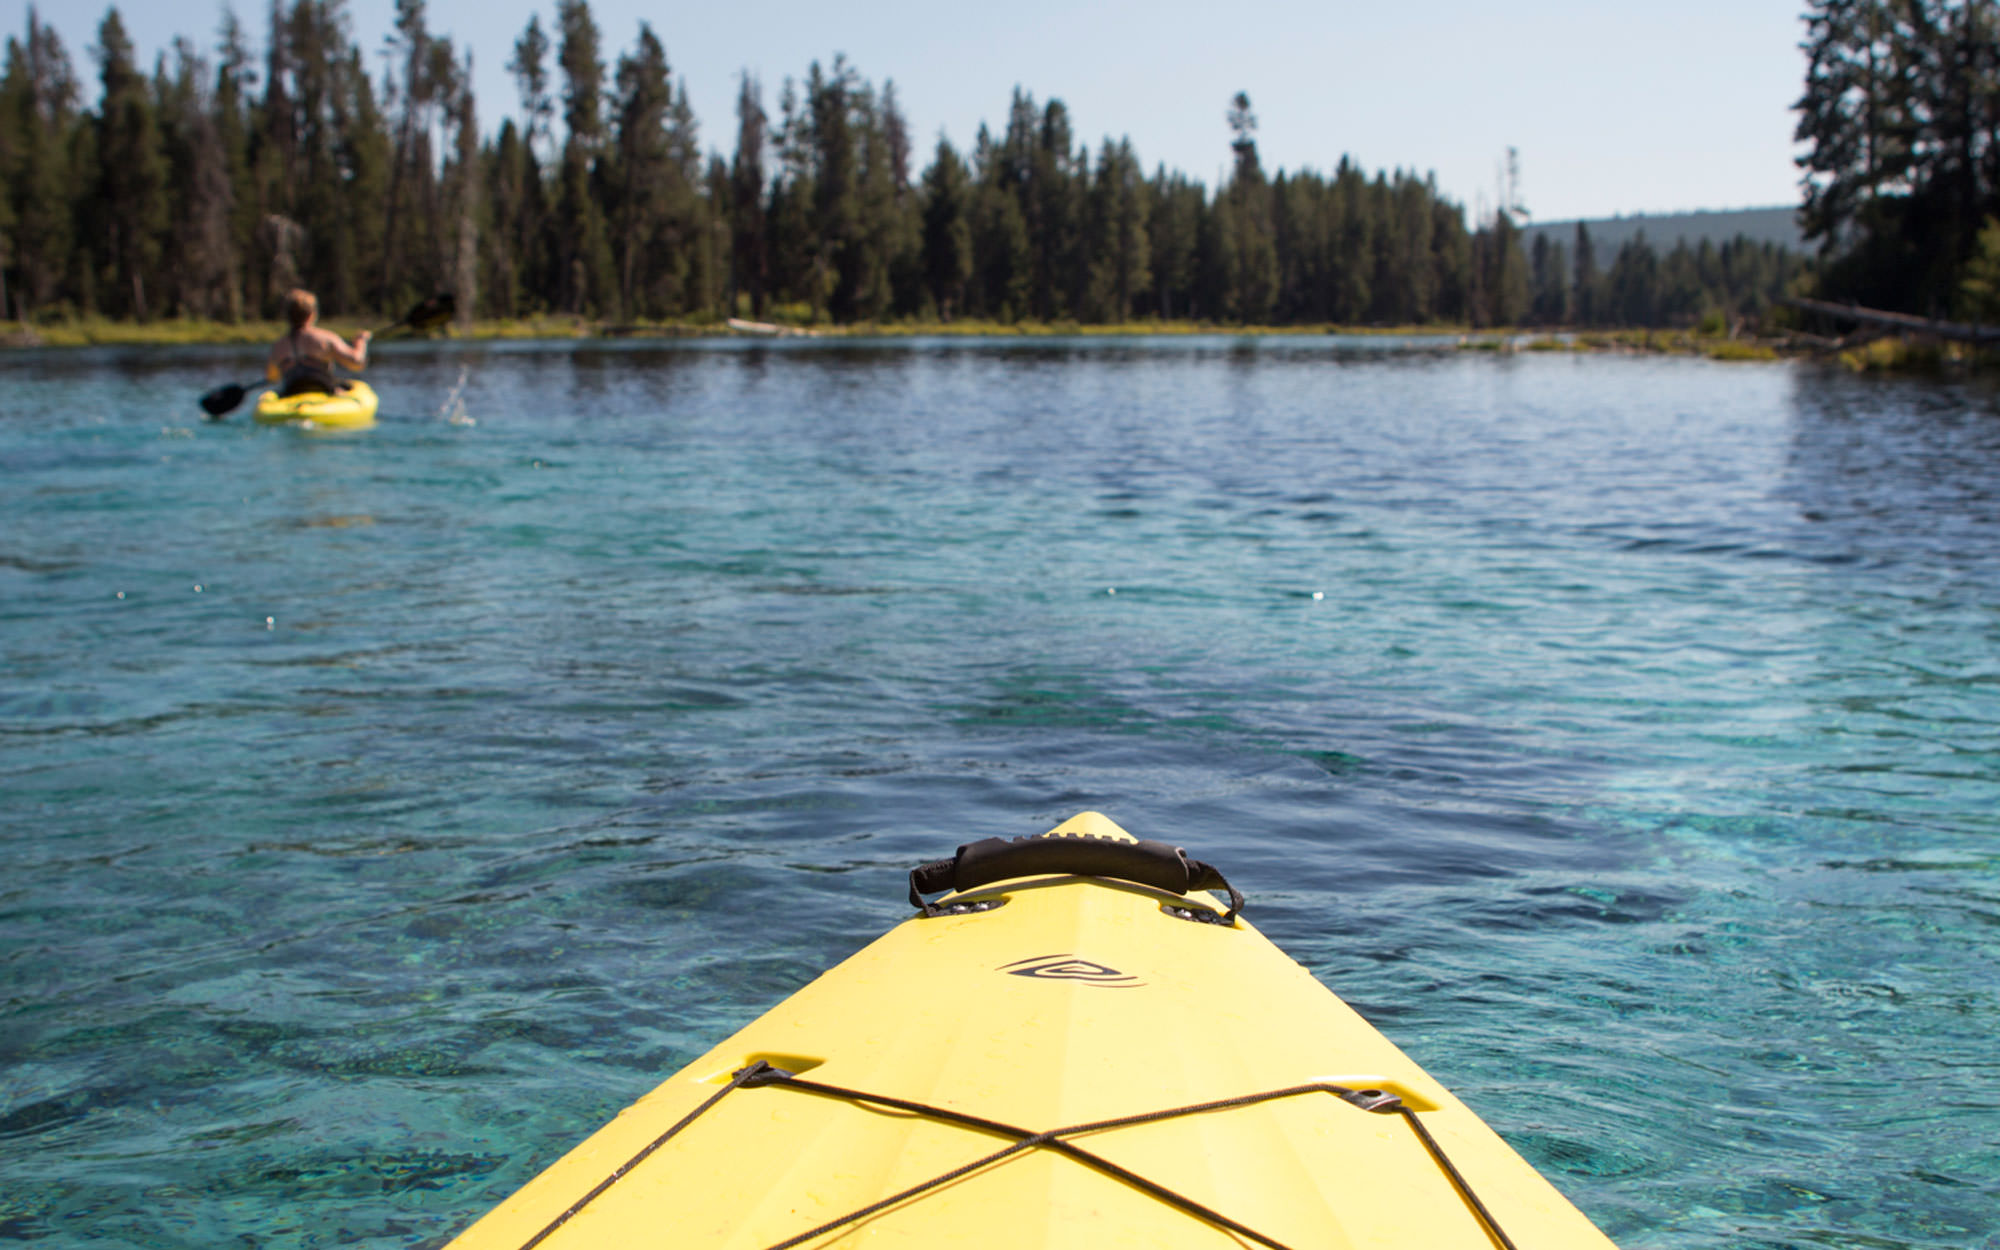 A kayker's perspective of Spring Creek shows clear blue waters and the yellow front of a kayak.